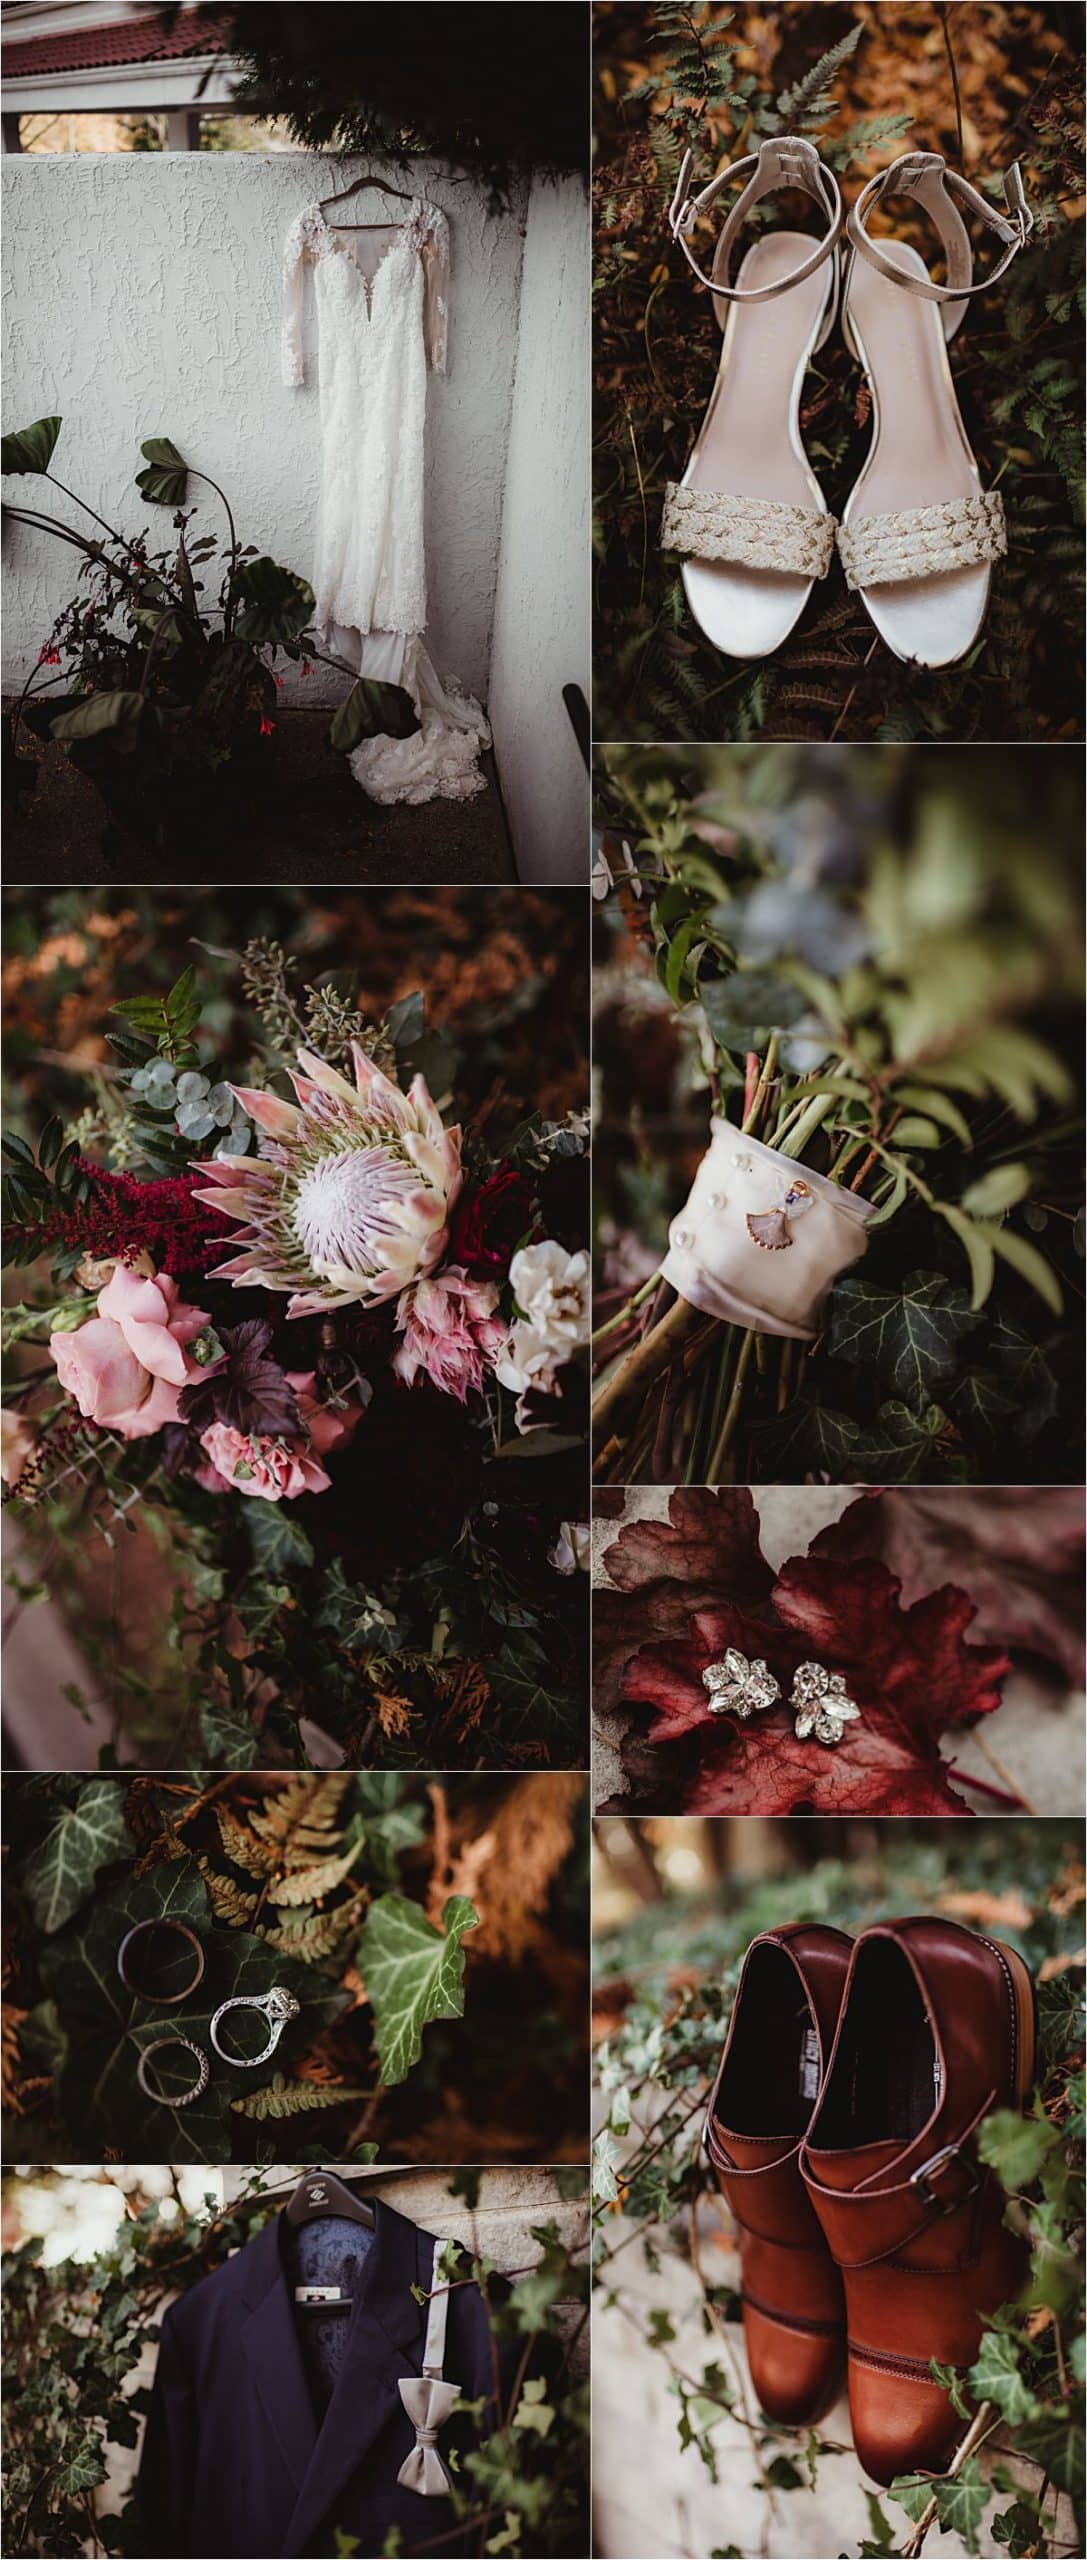 Intimate Fall Wedding Getting Ready Details